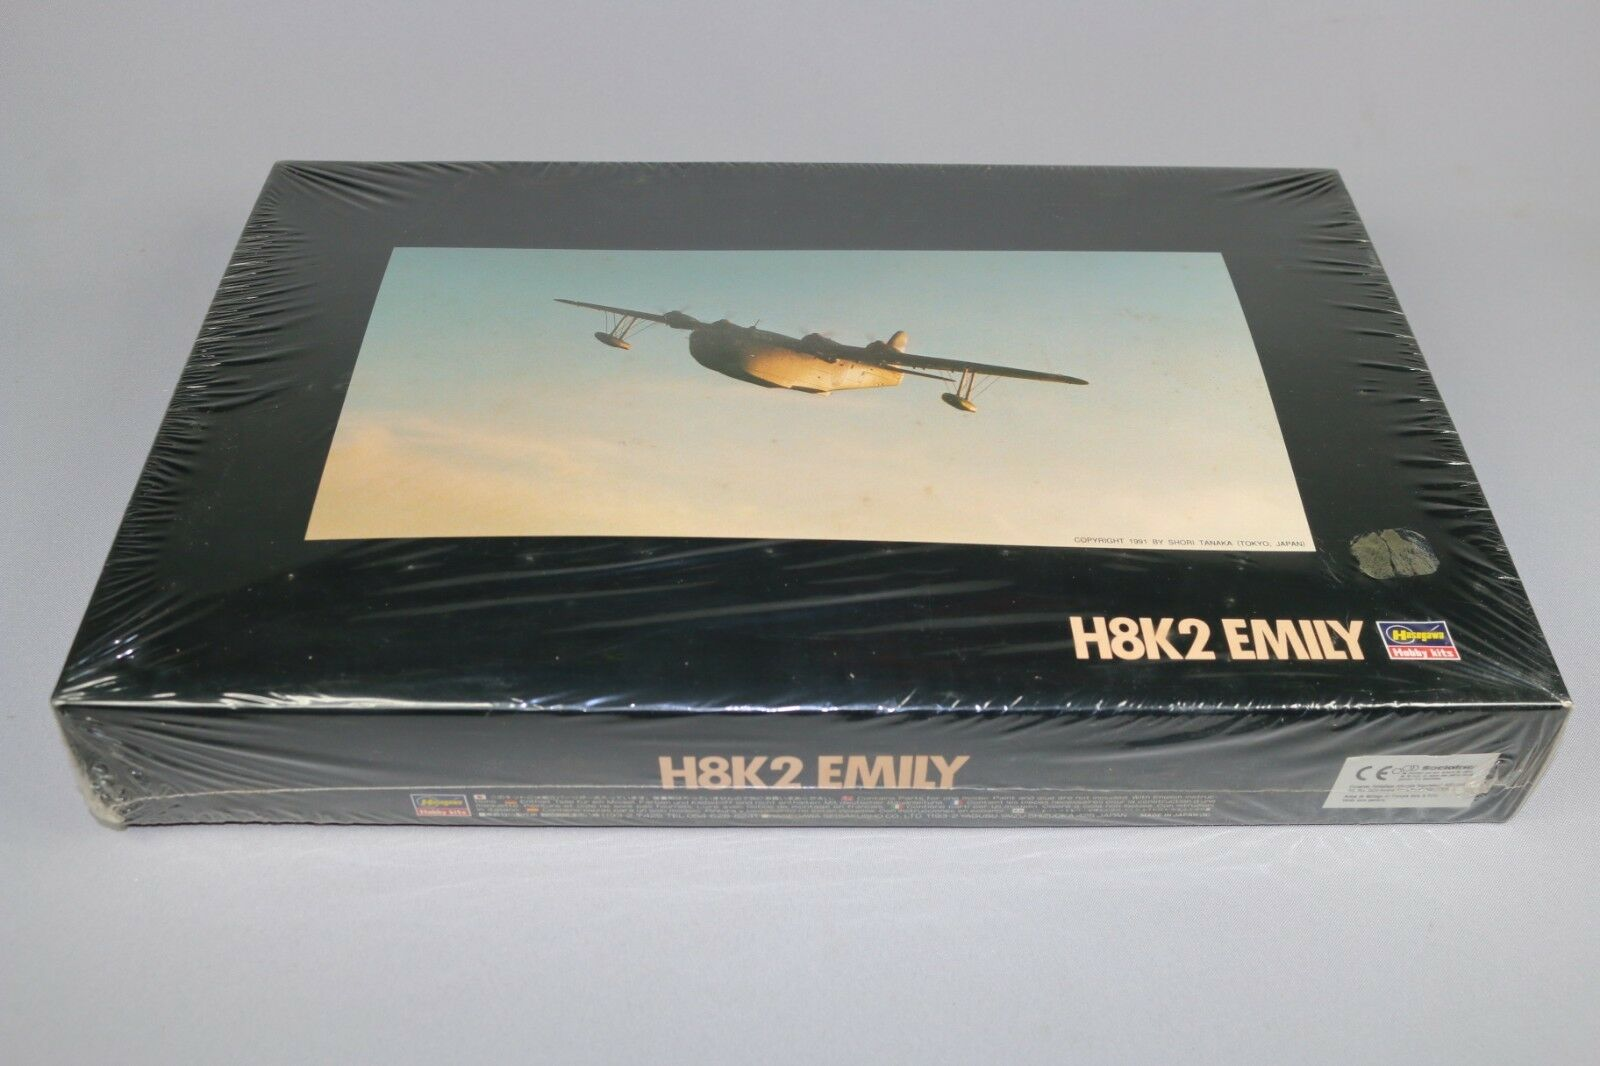 ZF178 Hasegawa 1 72 maquette avion militaire QP17 2400 H8K2 family 1991